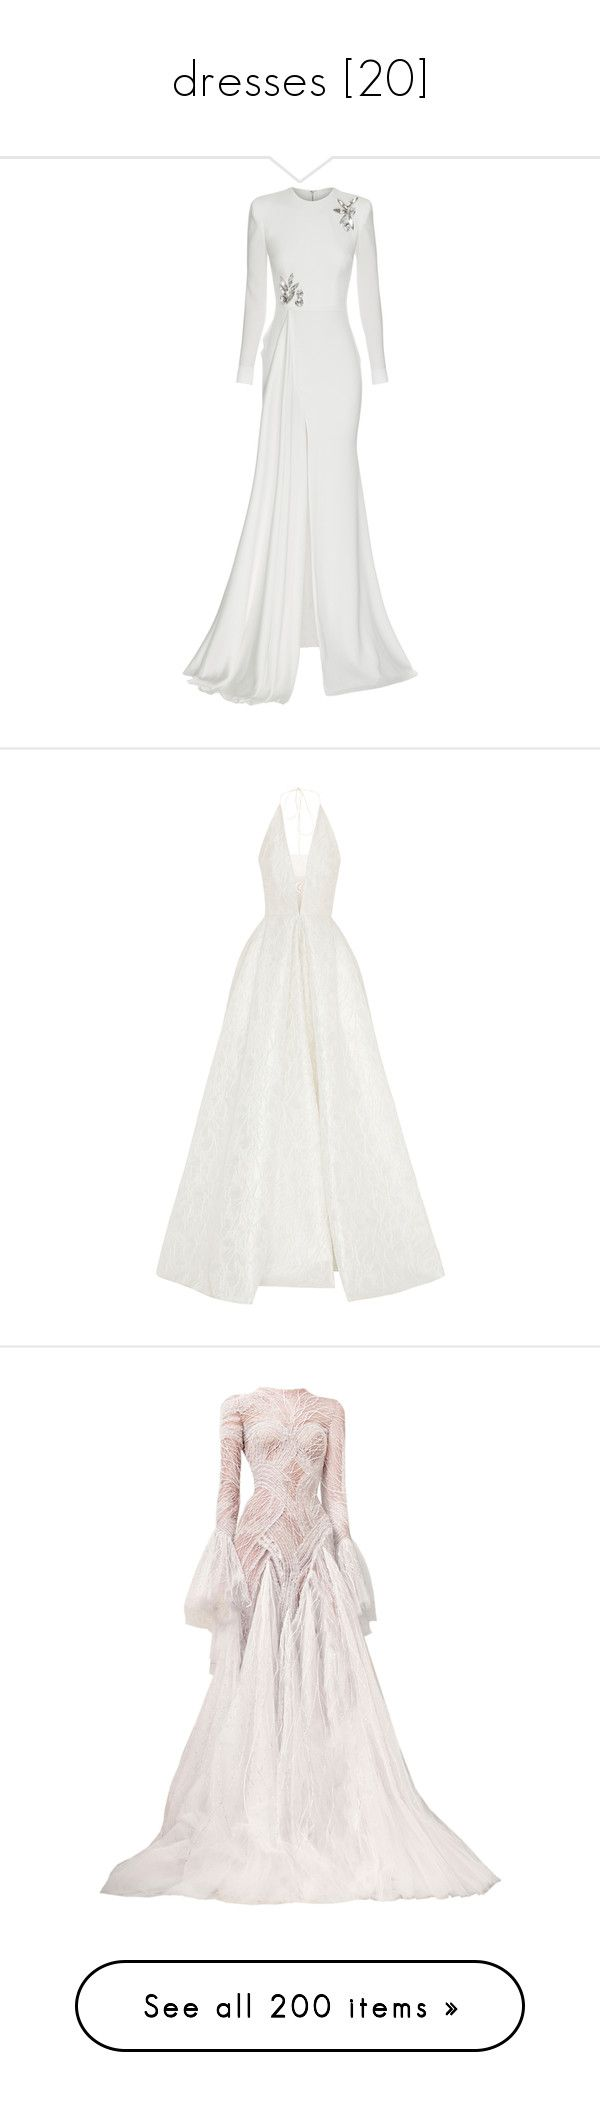 """dresses [20]"" by caramara3 ❤ liked on Polyvore featuring dresses, gowns, vestido, white, white evening gowns, white ball gowns, satin dress, long sleeve evening dresses, long sleeve ball gowns and white halter dress"